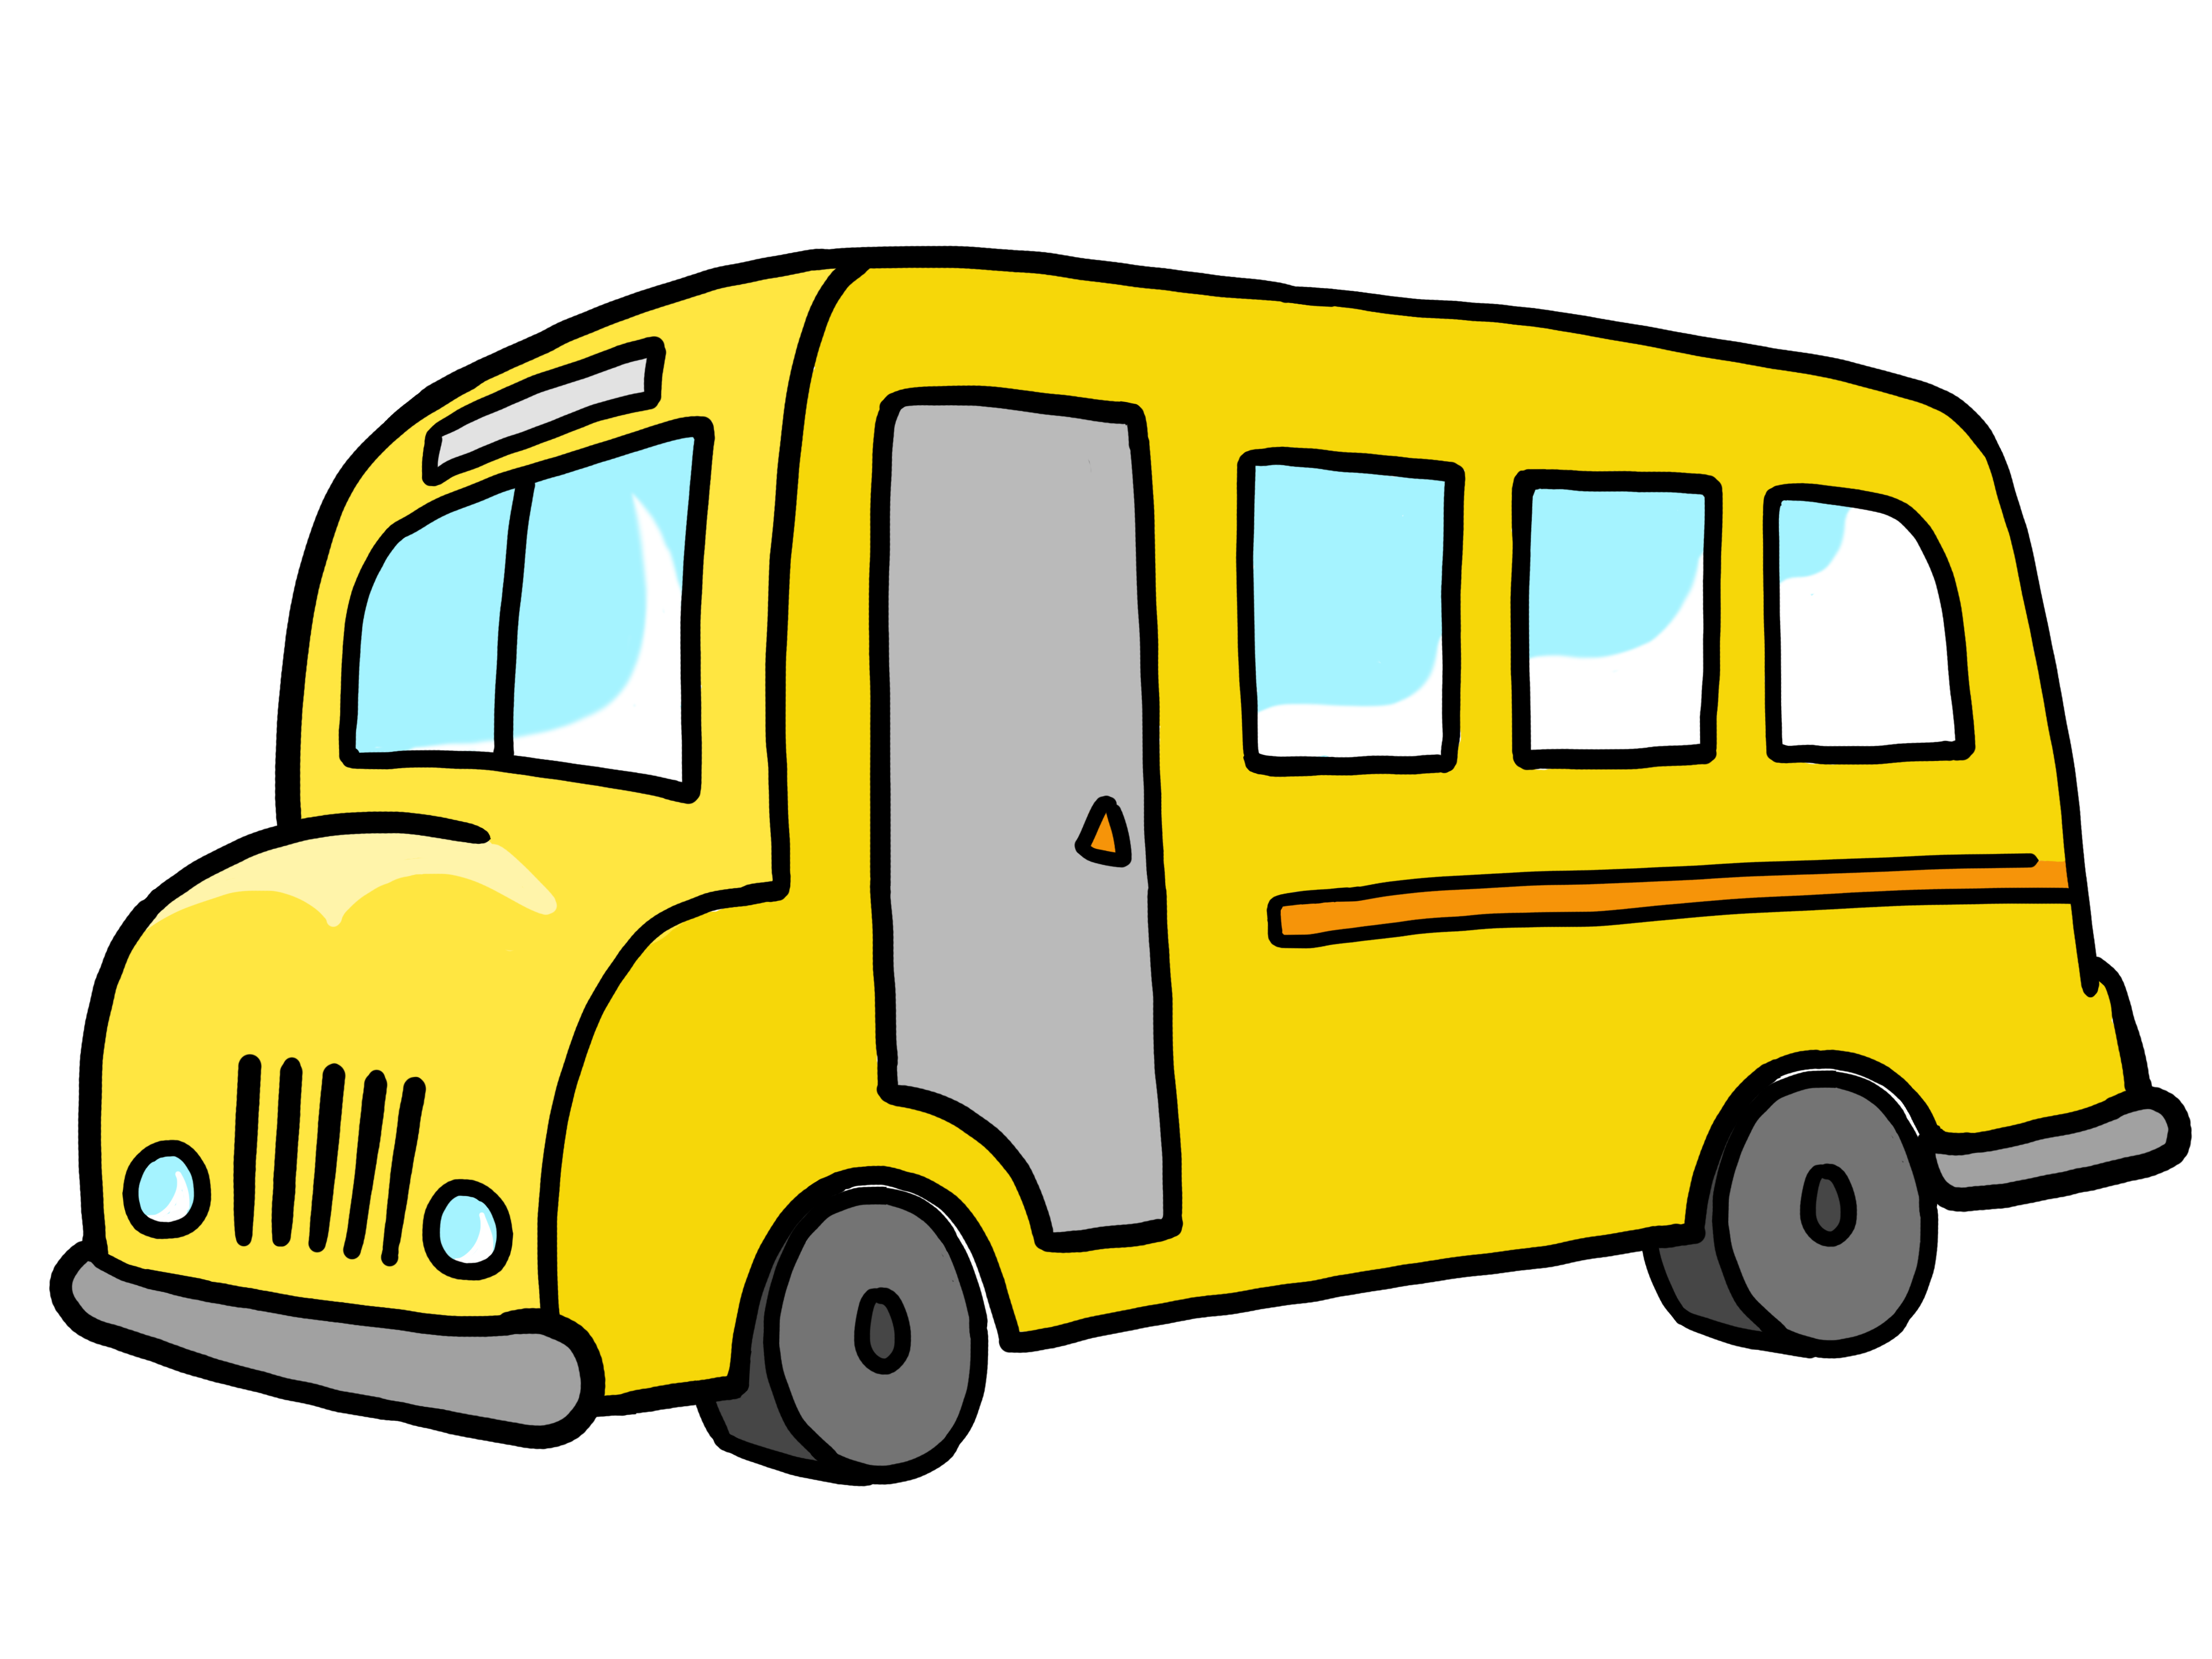 bus-clipart-school-bus-clipart-free-school-bus-free.png